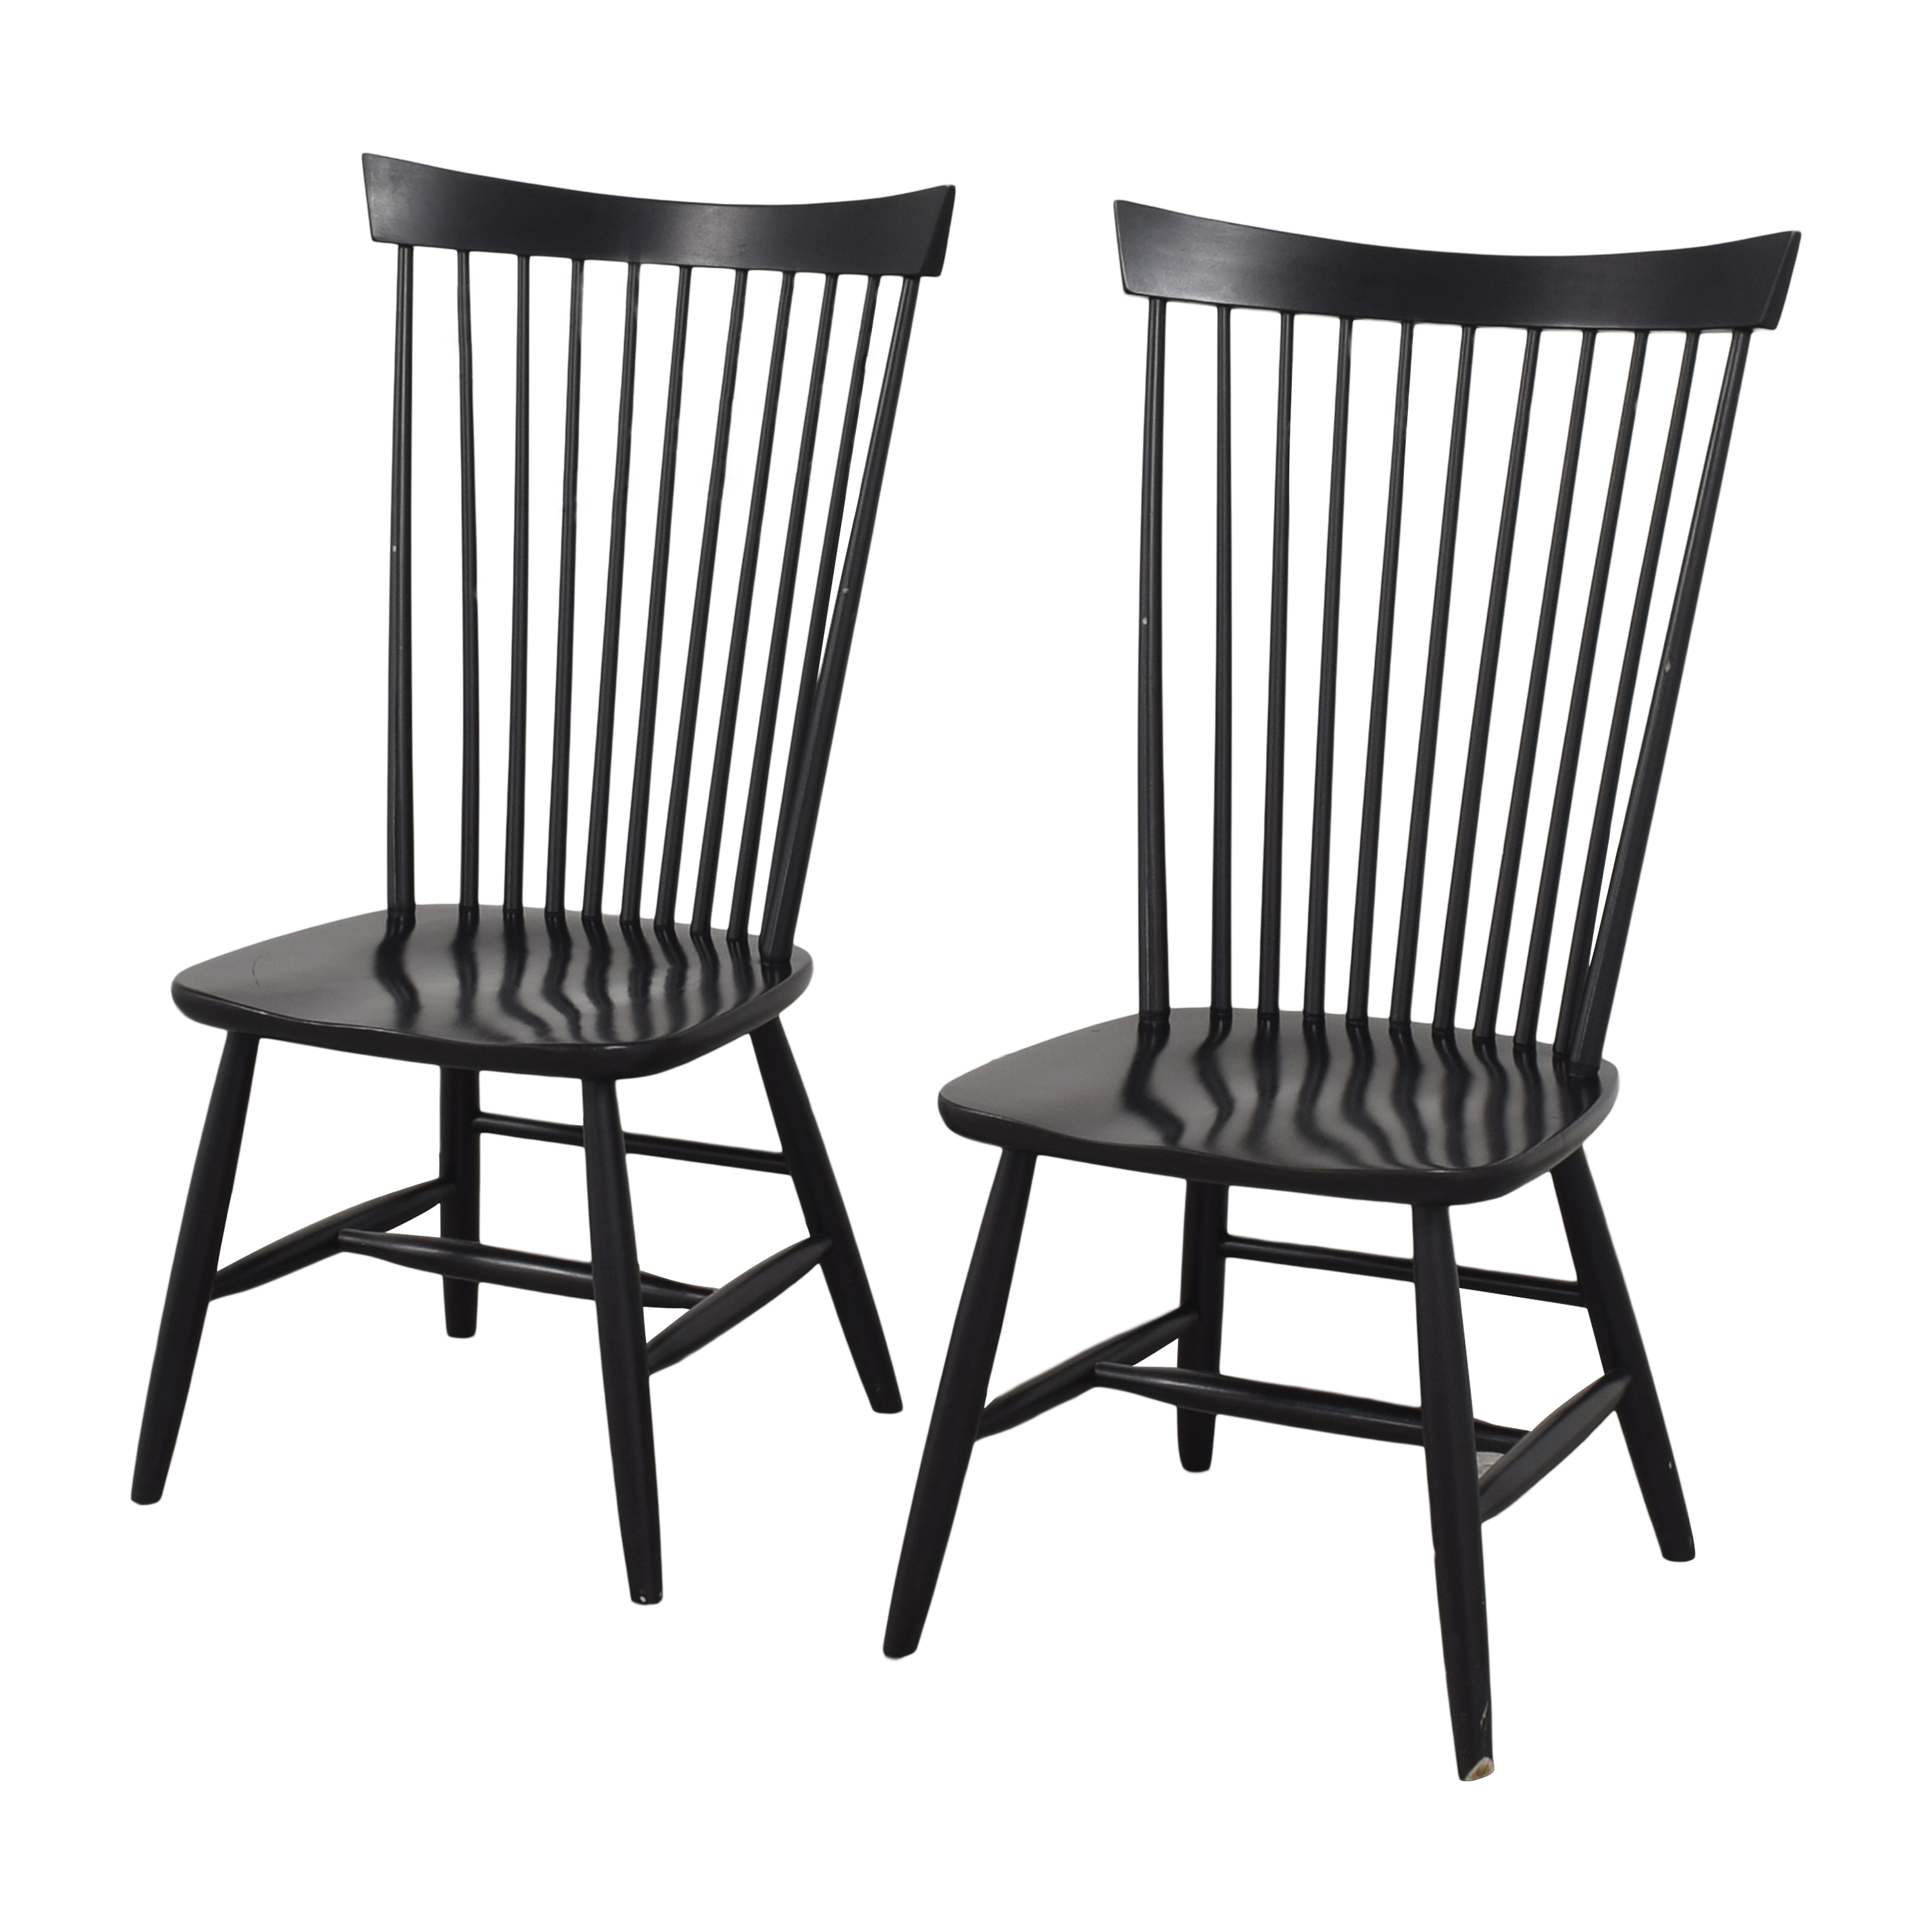 Crate & Barrel Crate & Barrel Marlow II Dining Chairs coupon